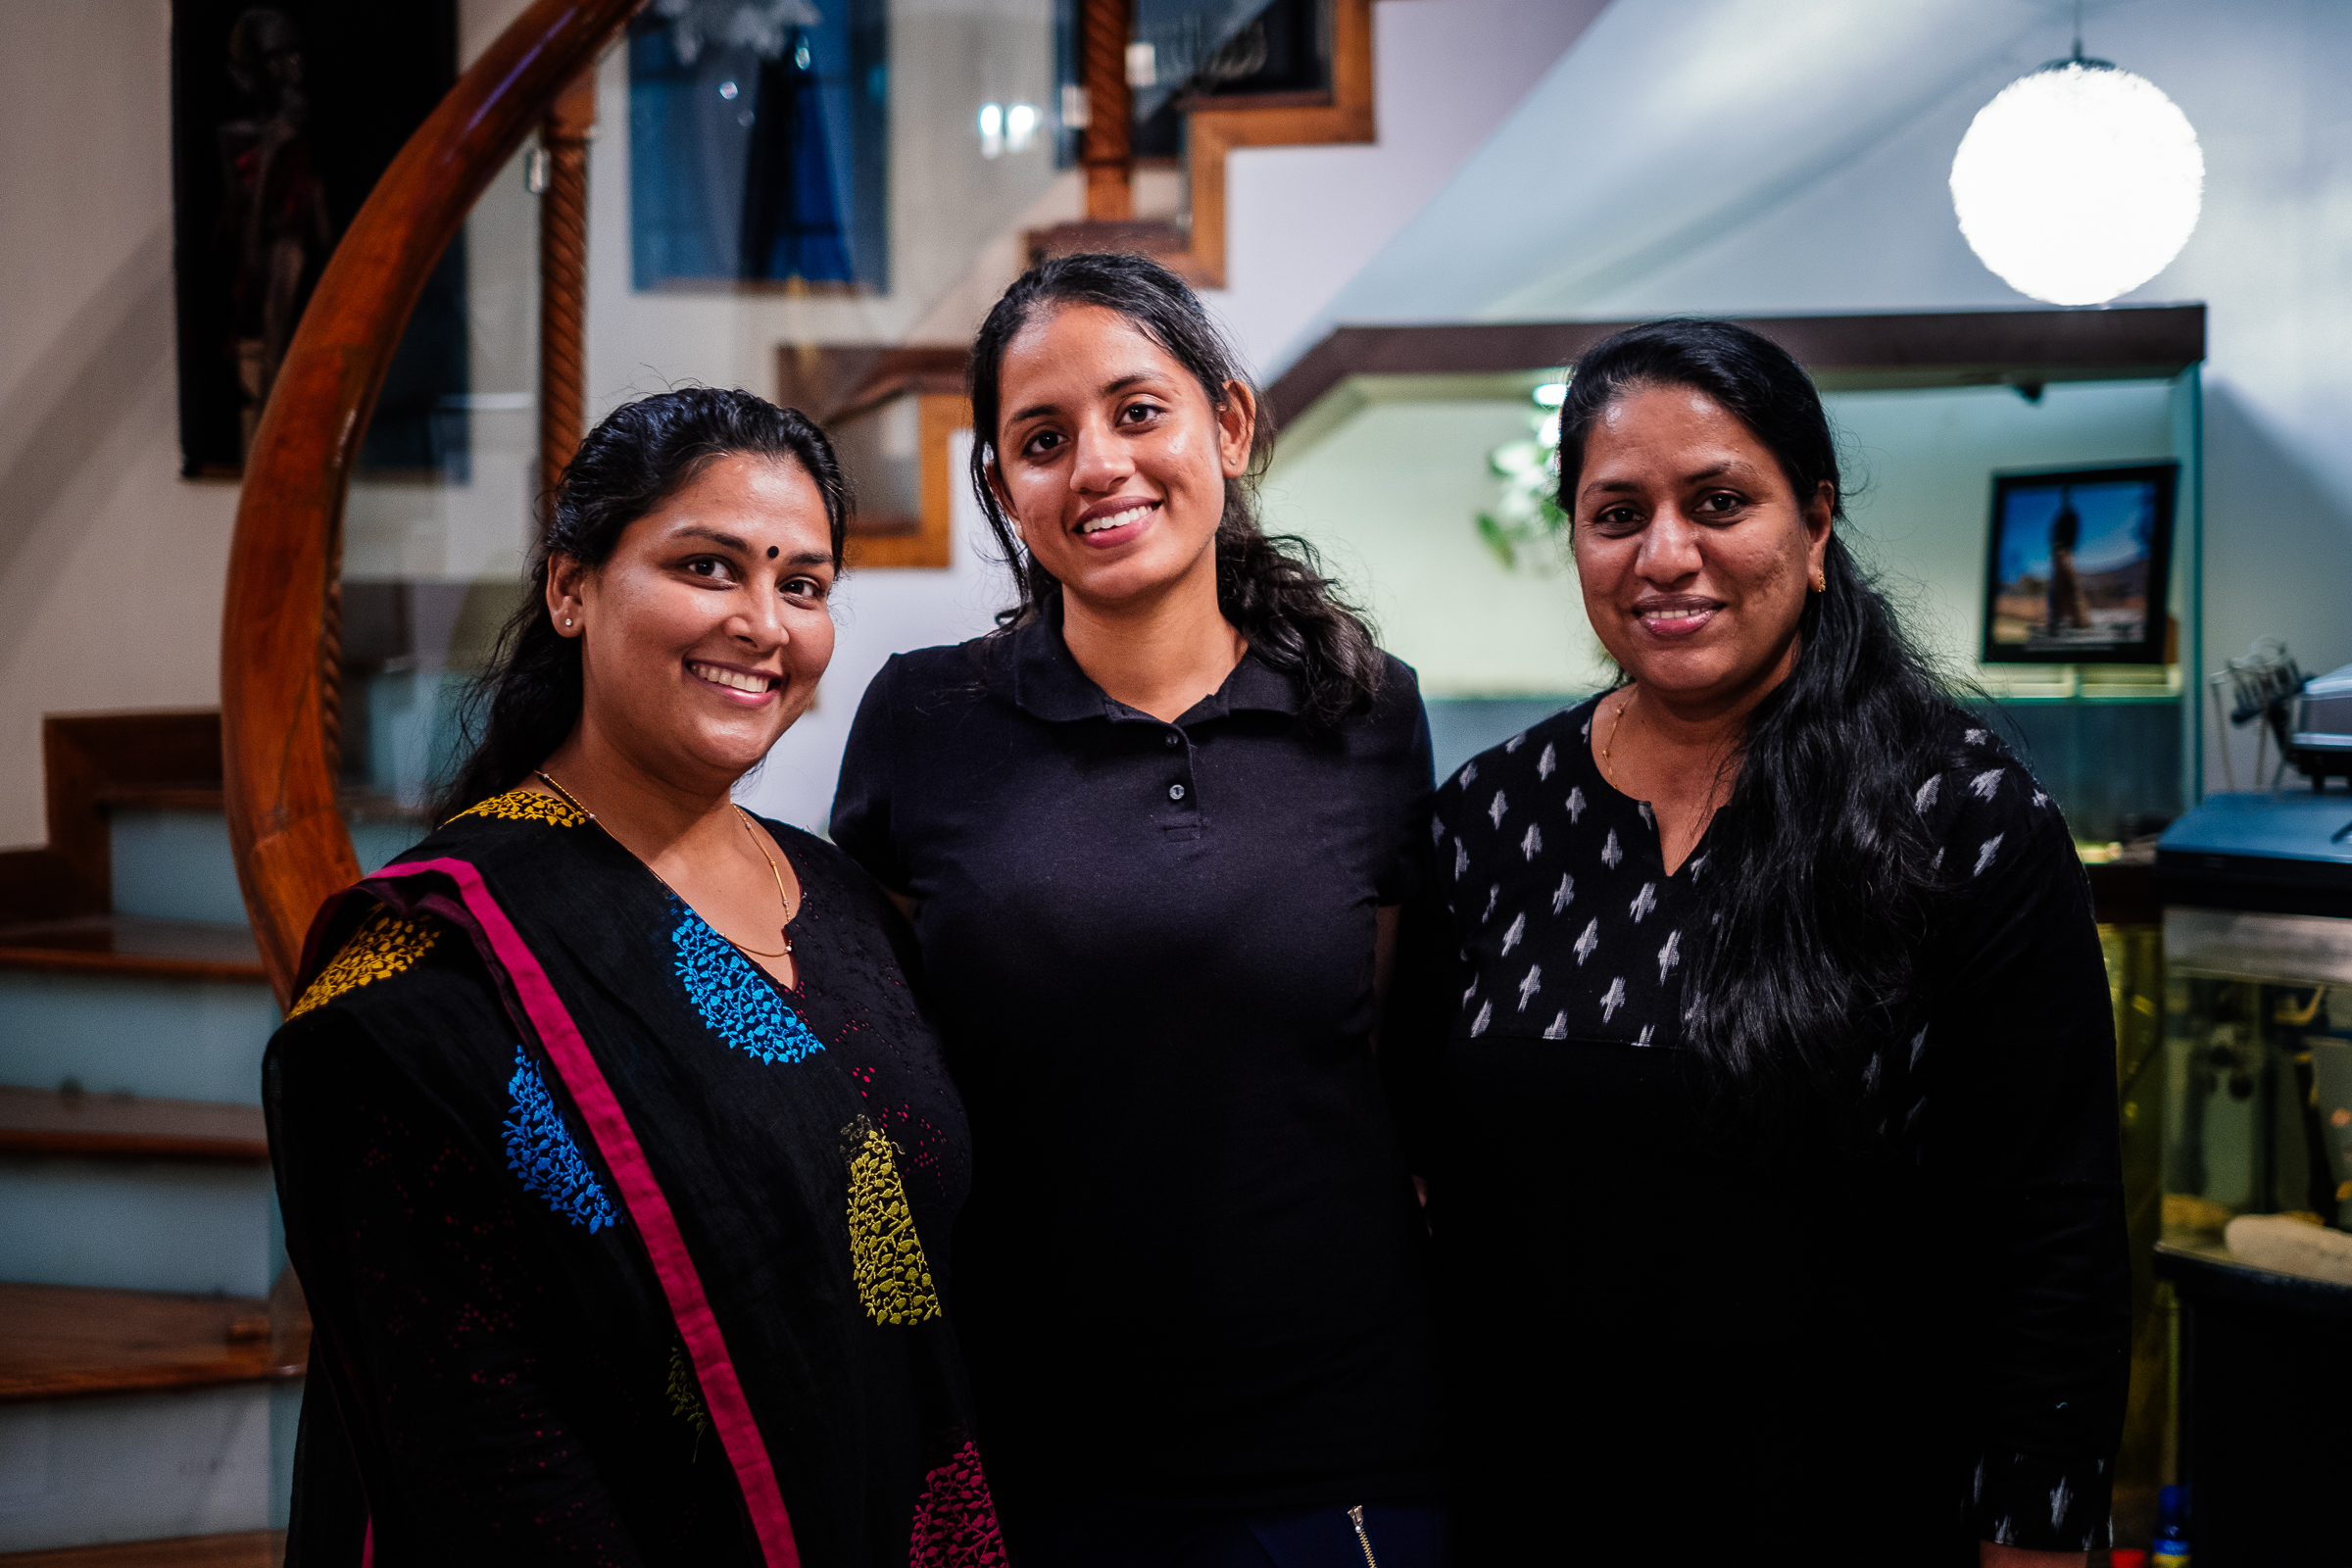 We met with 3 patients in Bangalore to chat about AB's and test our concepts. Check out the learnings here